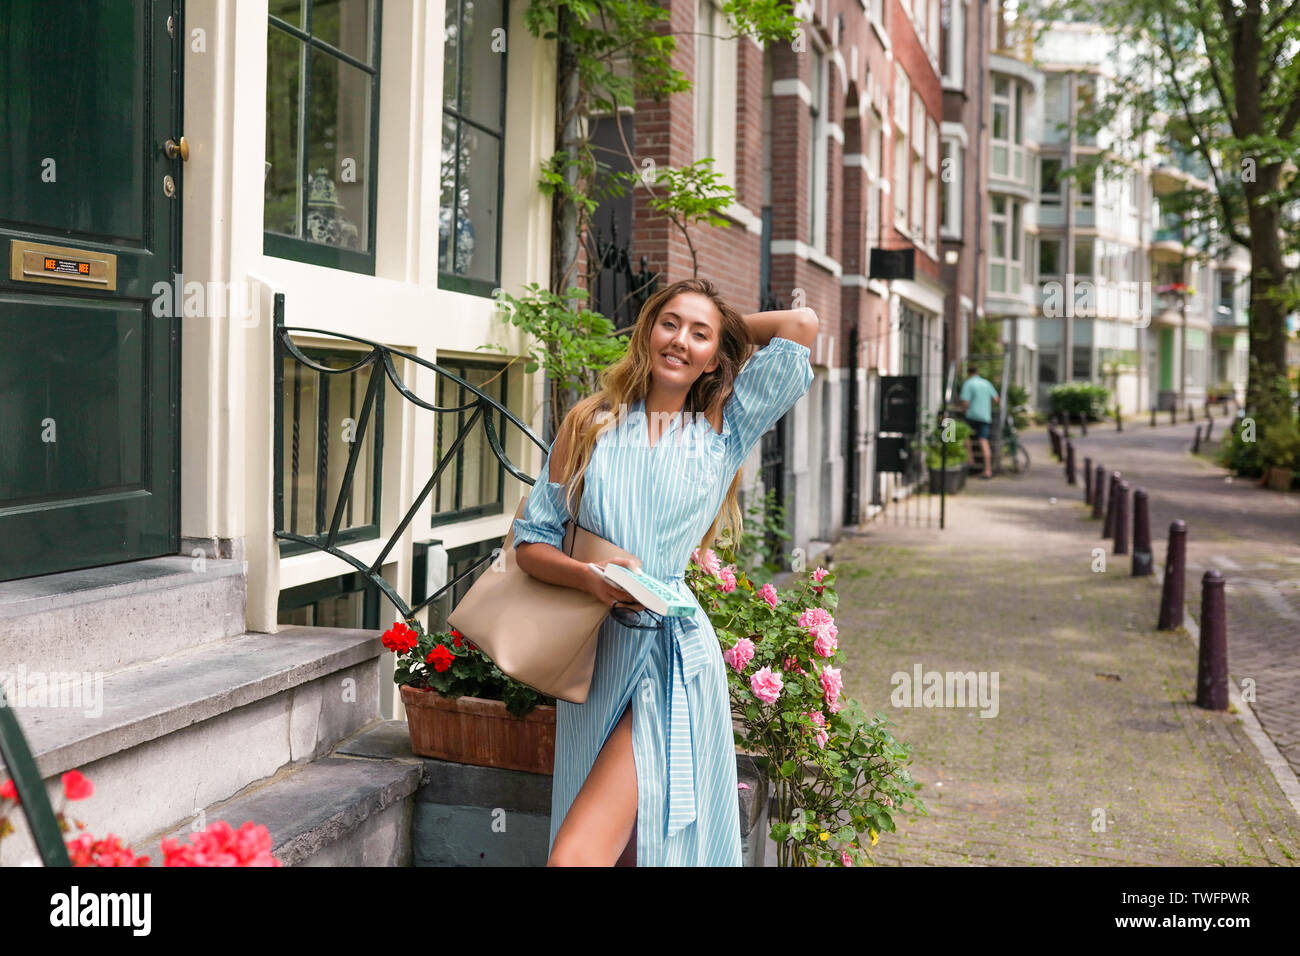 Funny girl shooting near the flowers, bright europenean streets, standing near the green door.Slim sexy body in modern summer dress with open shoulder Stock Photo